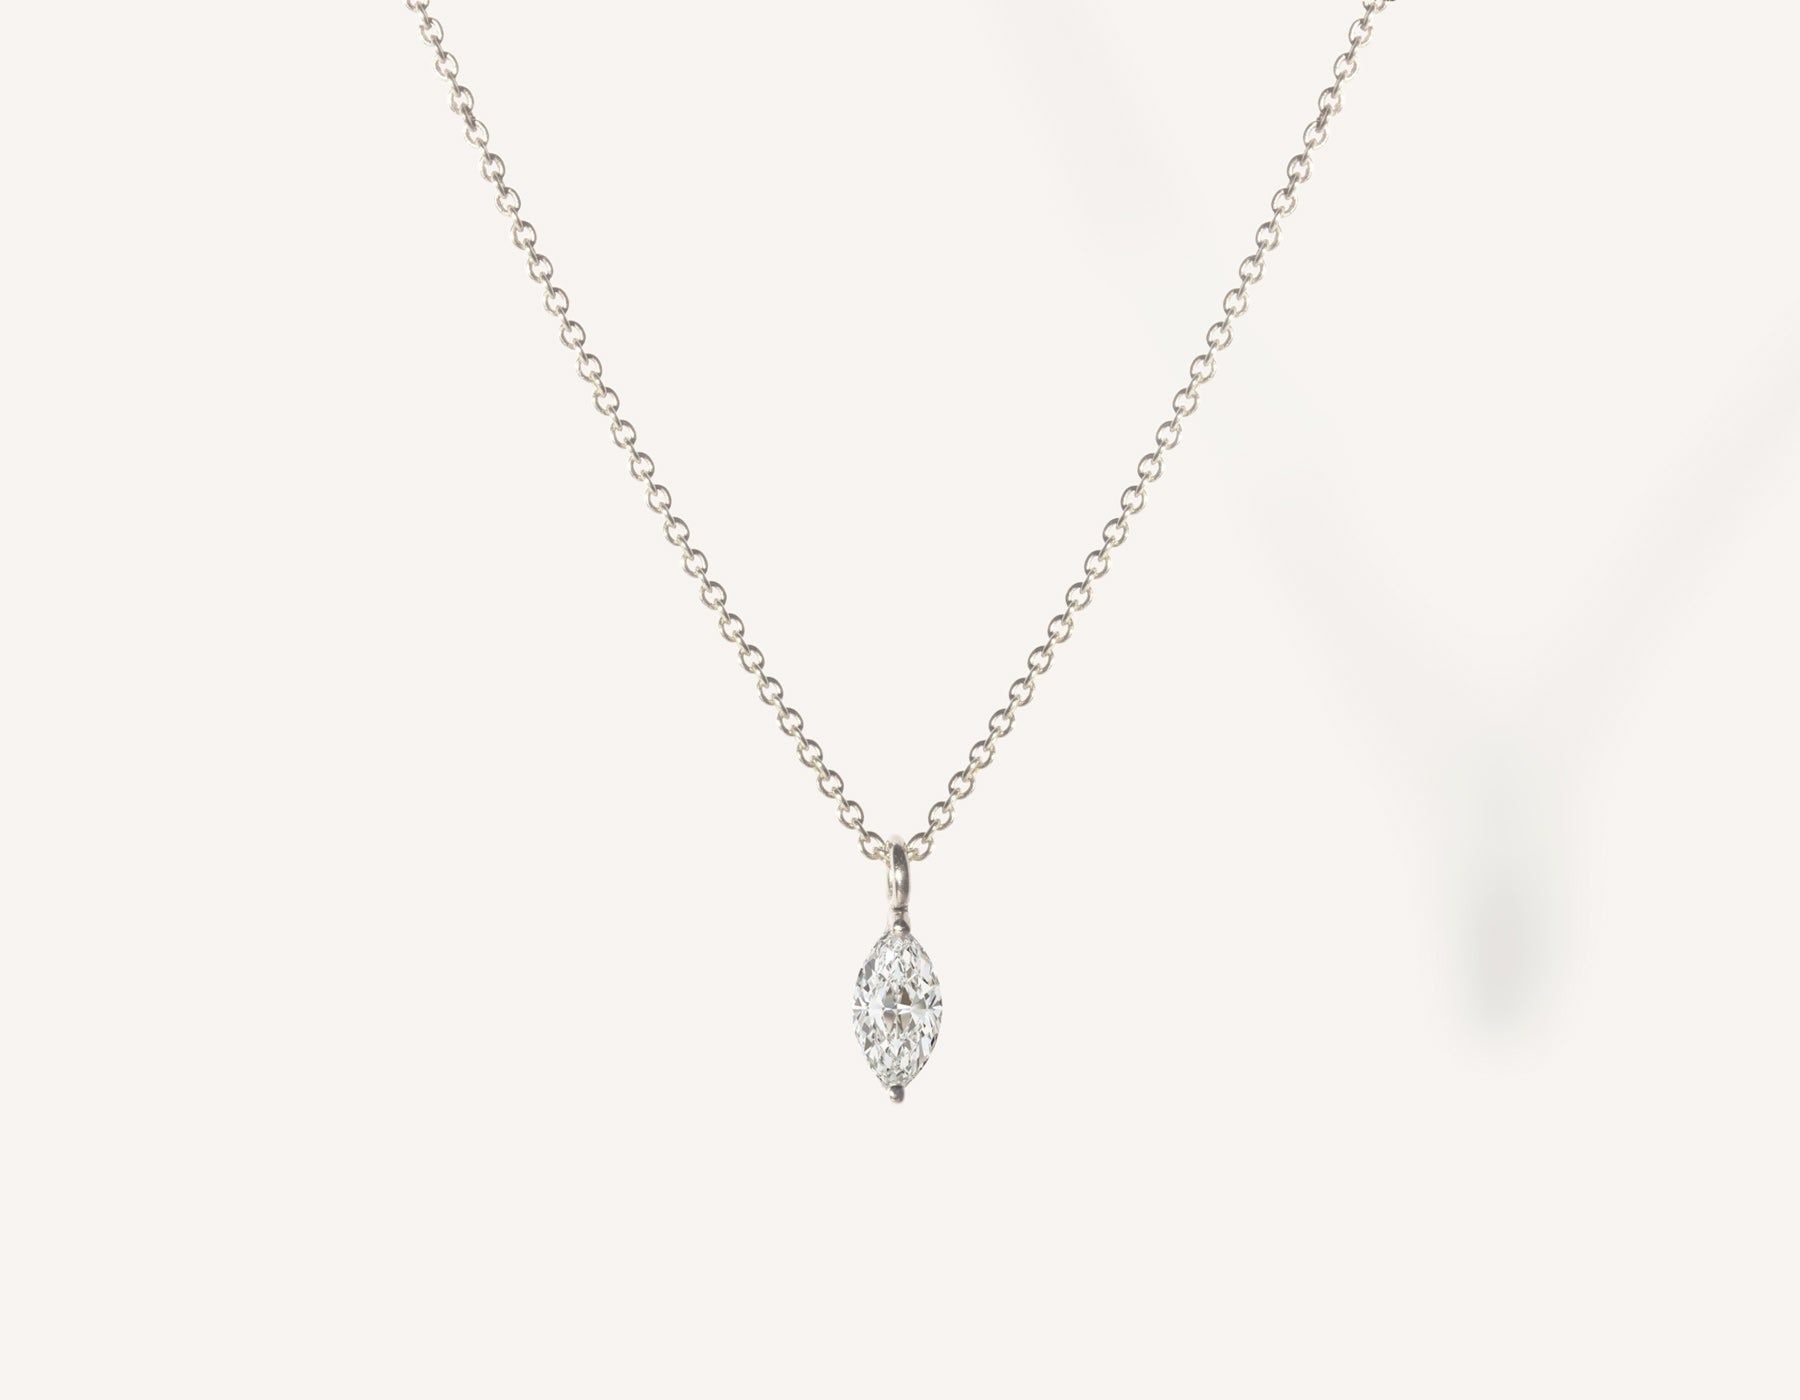 vrai & oro 14k solid gold dainty Marquise Diamond Necklace on minimalist oval link chain, 14K White Gold